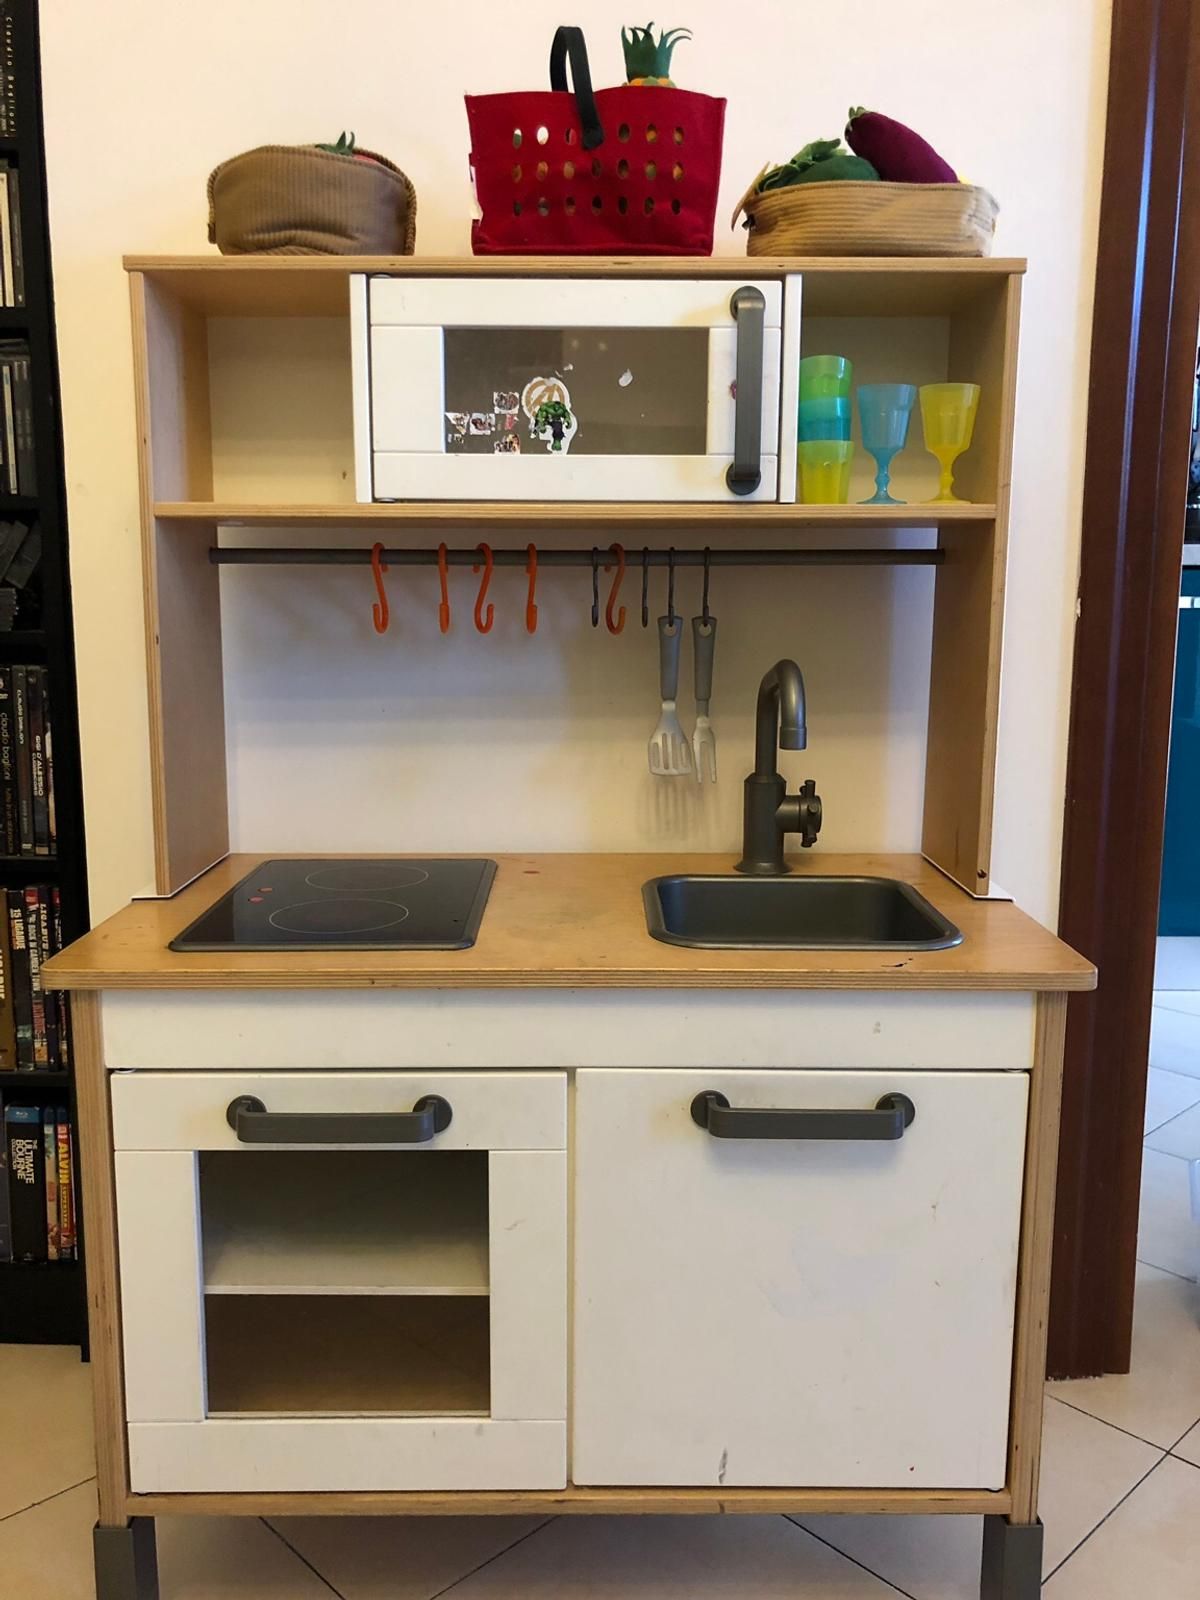 Cucina Ikea bambini in 00115 Roma for €60.00 for sale - Shpock